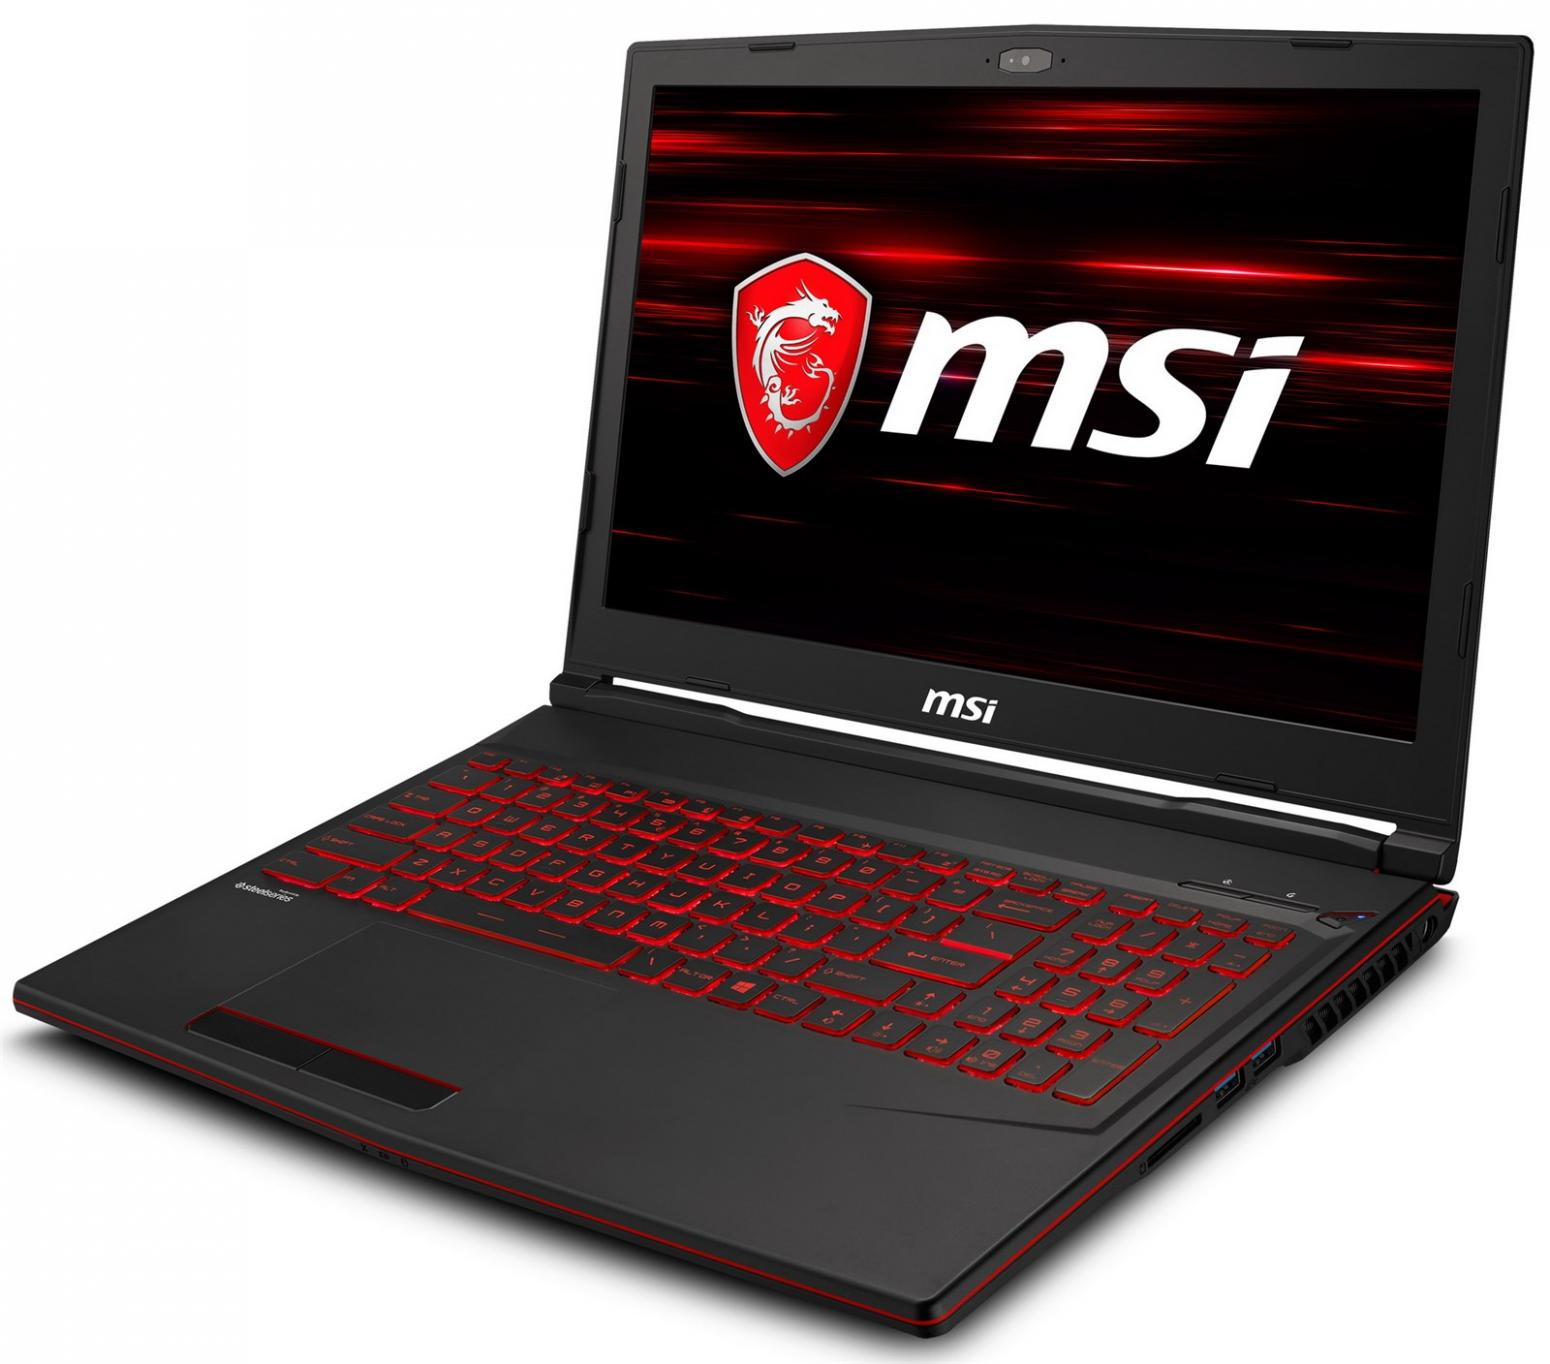 Image du PC portable MSI GL63 8SE-079XFR - RTX 2060, 120 Hz, Sans Windows